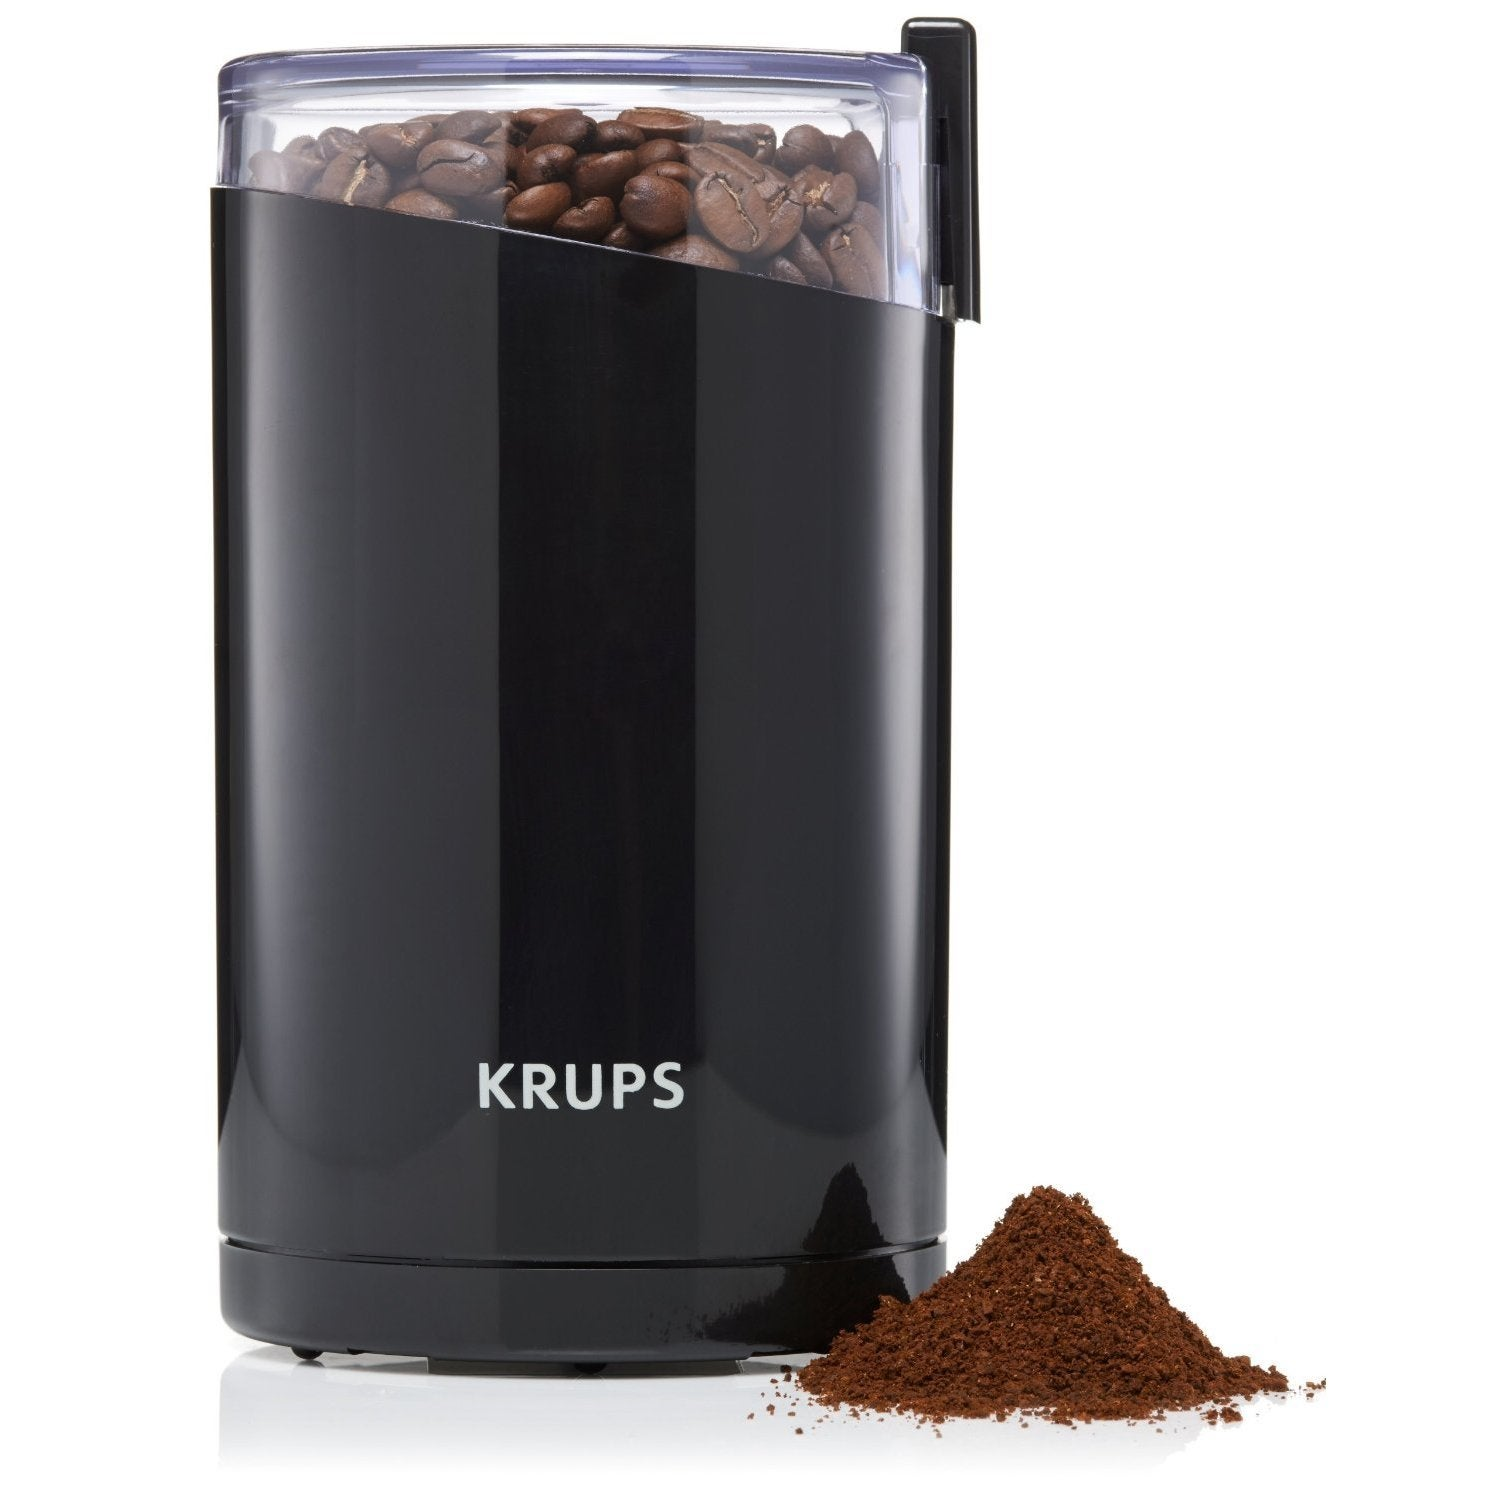 Krups Black Electric Spice and Coffee Grinder (Coffee Mak...